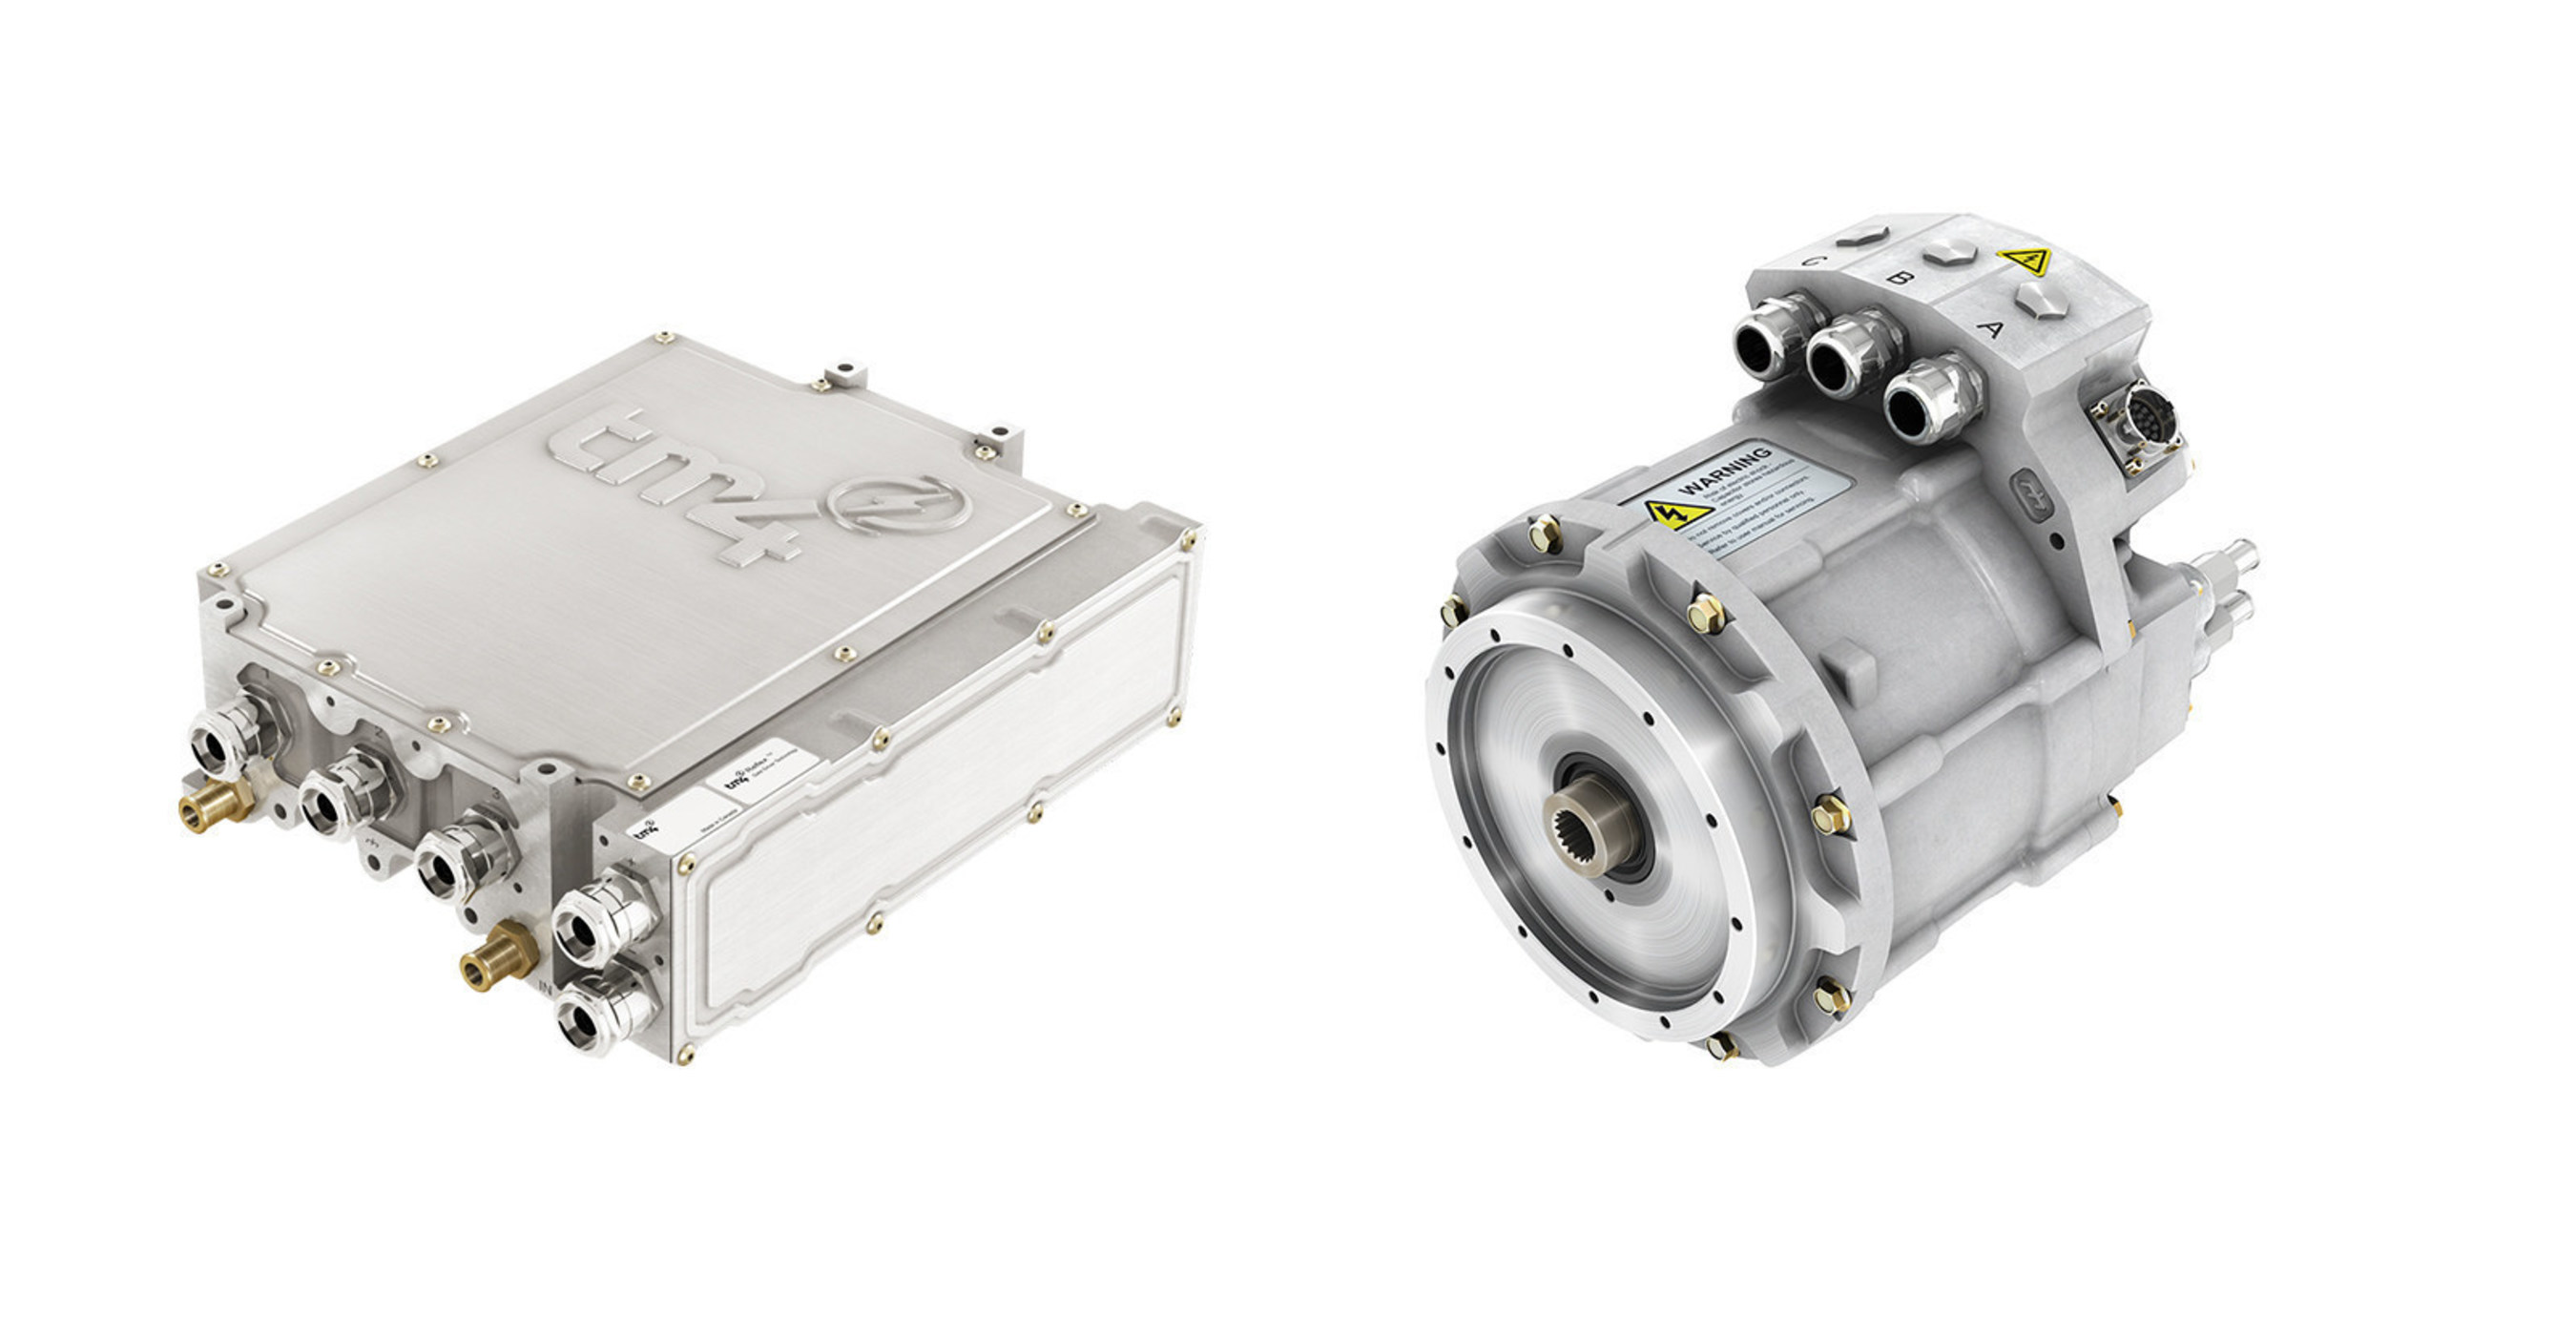 TM4 supplies its electric motor and inverter to Ballard Power Systems for its new generation